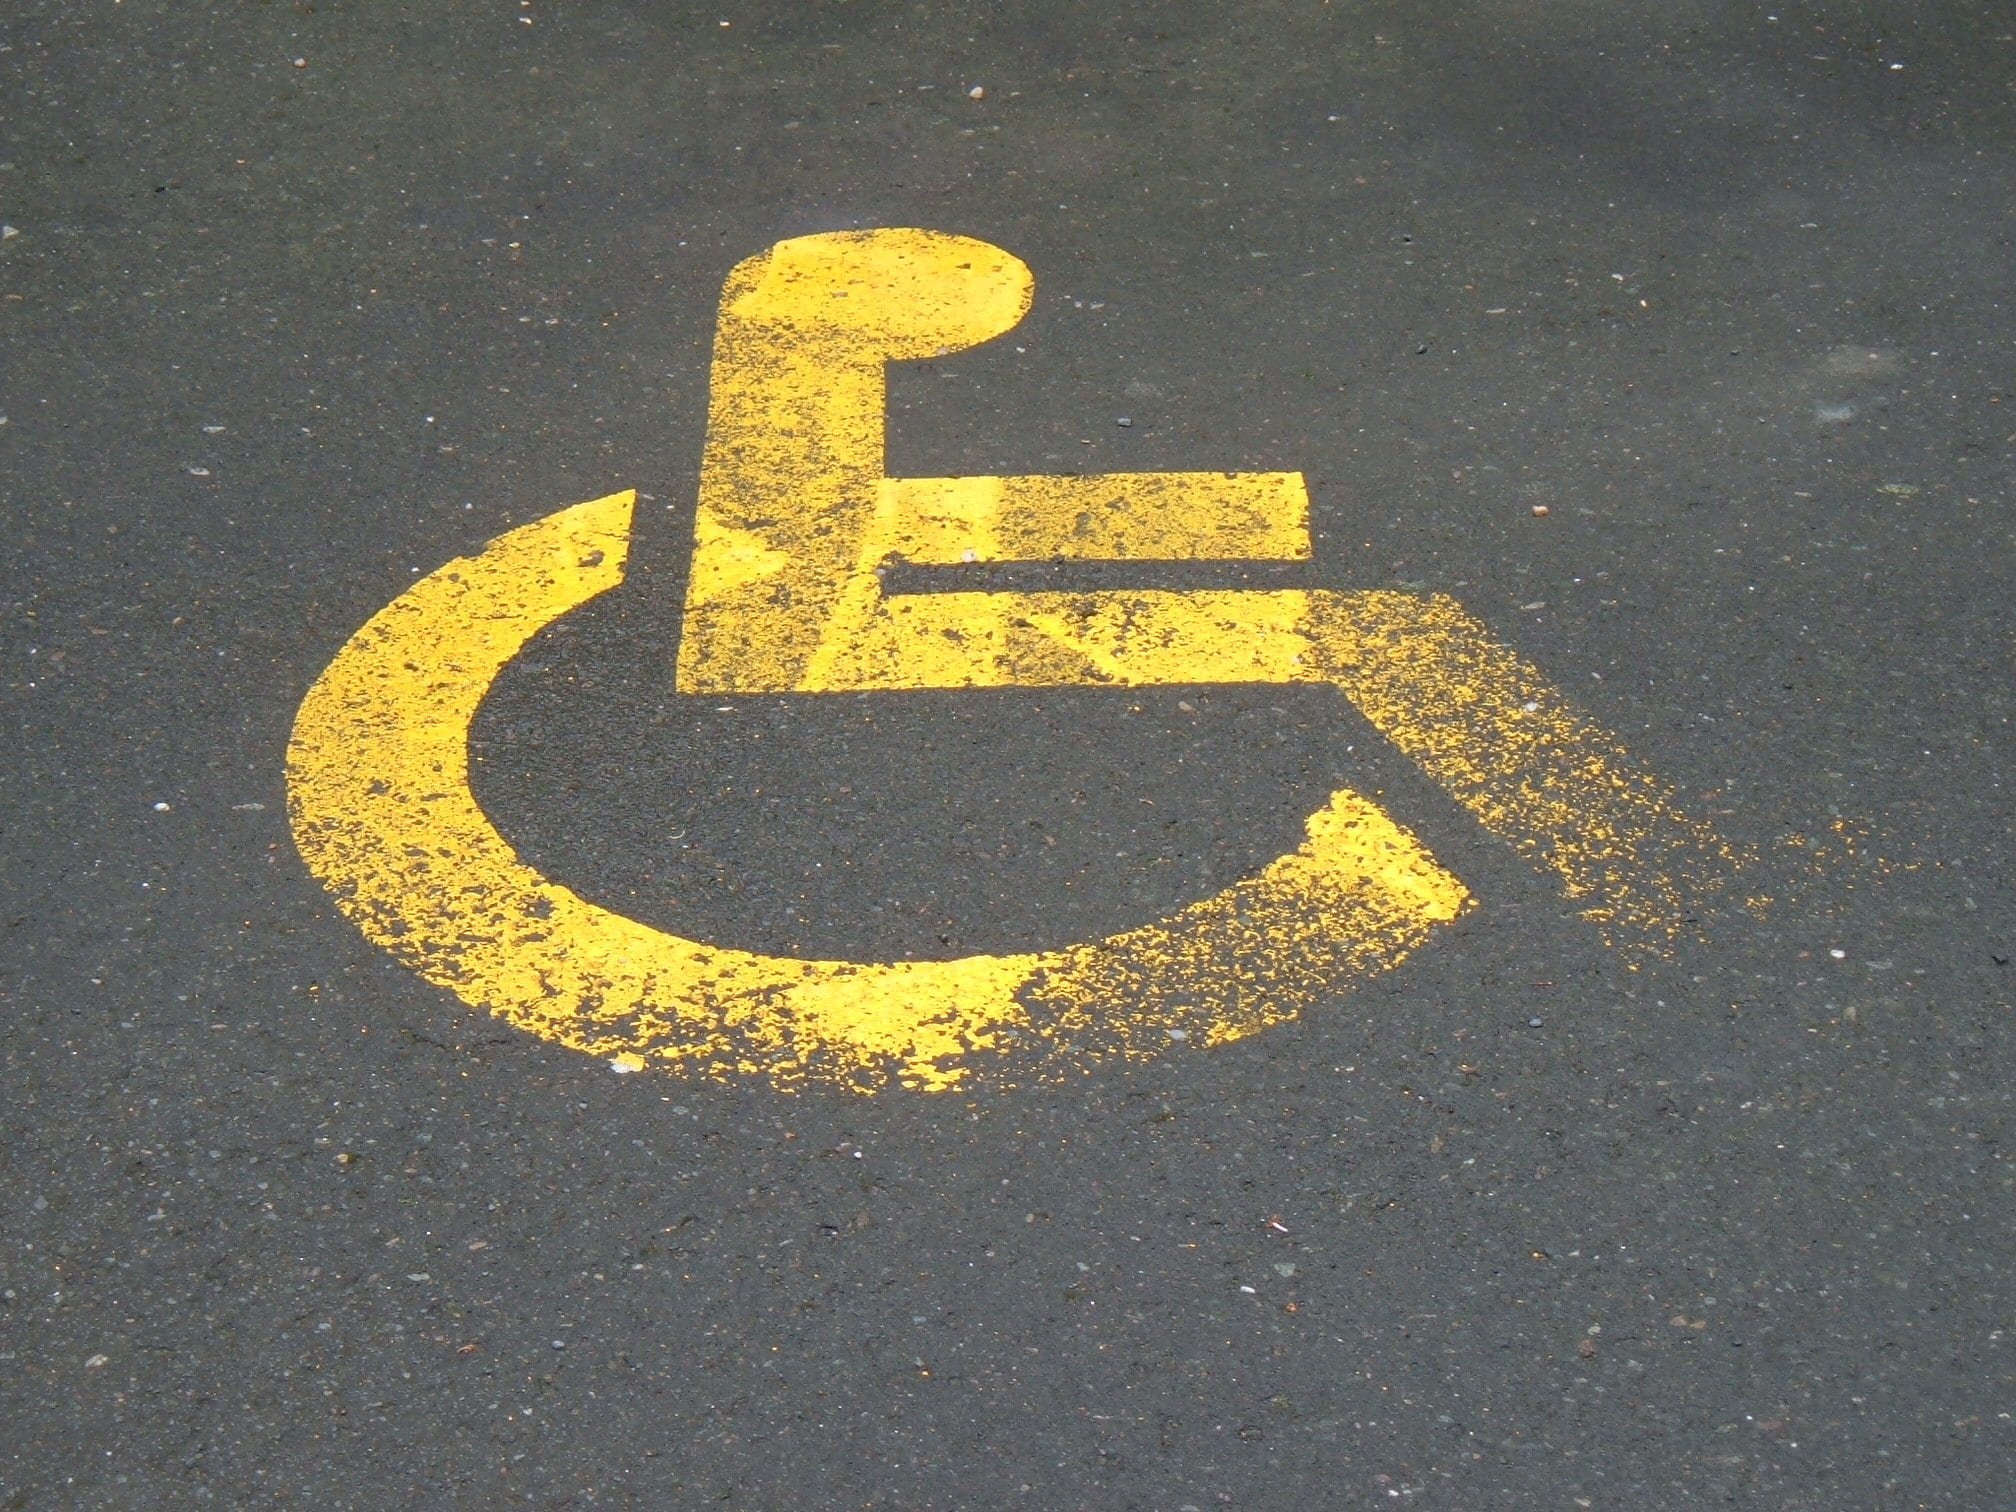 The symbol for handicap parking in yellow paint on black pavement.